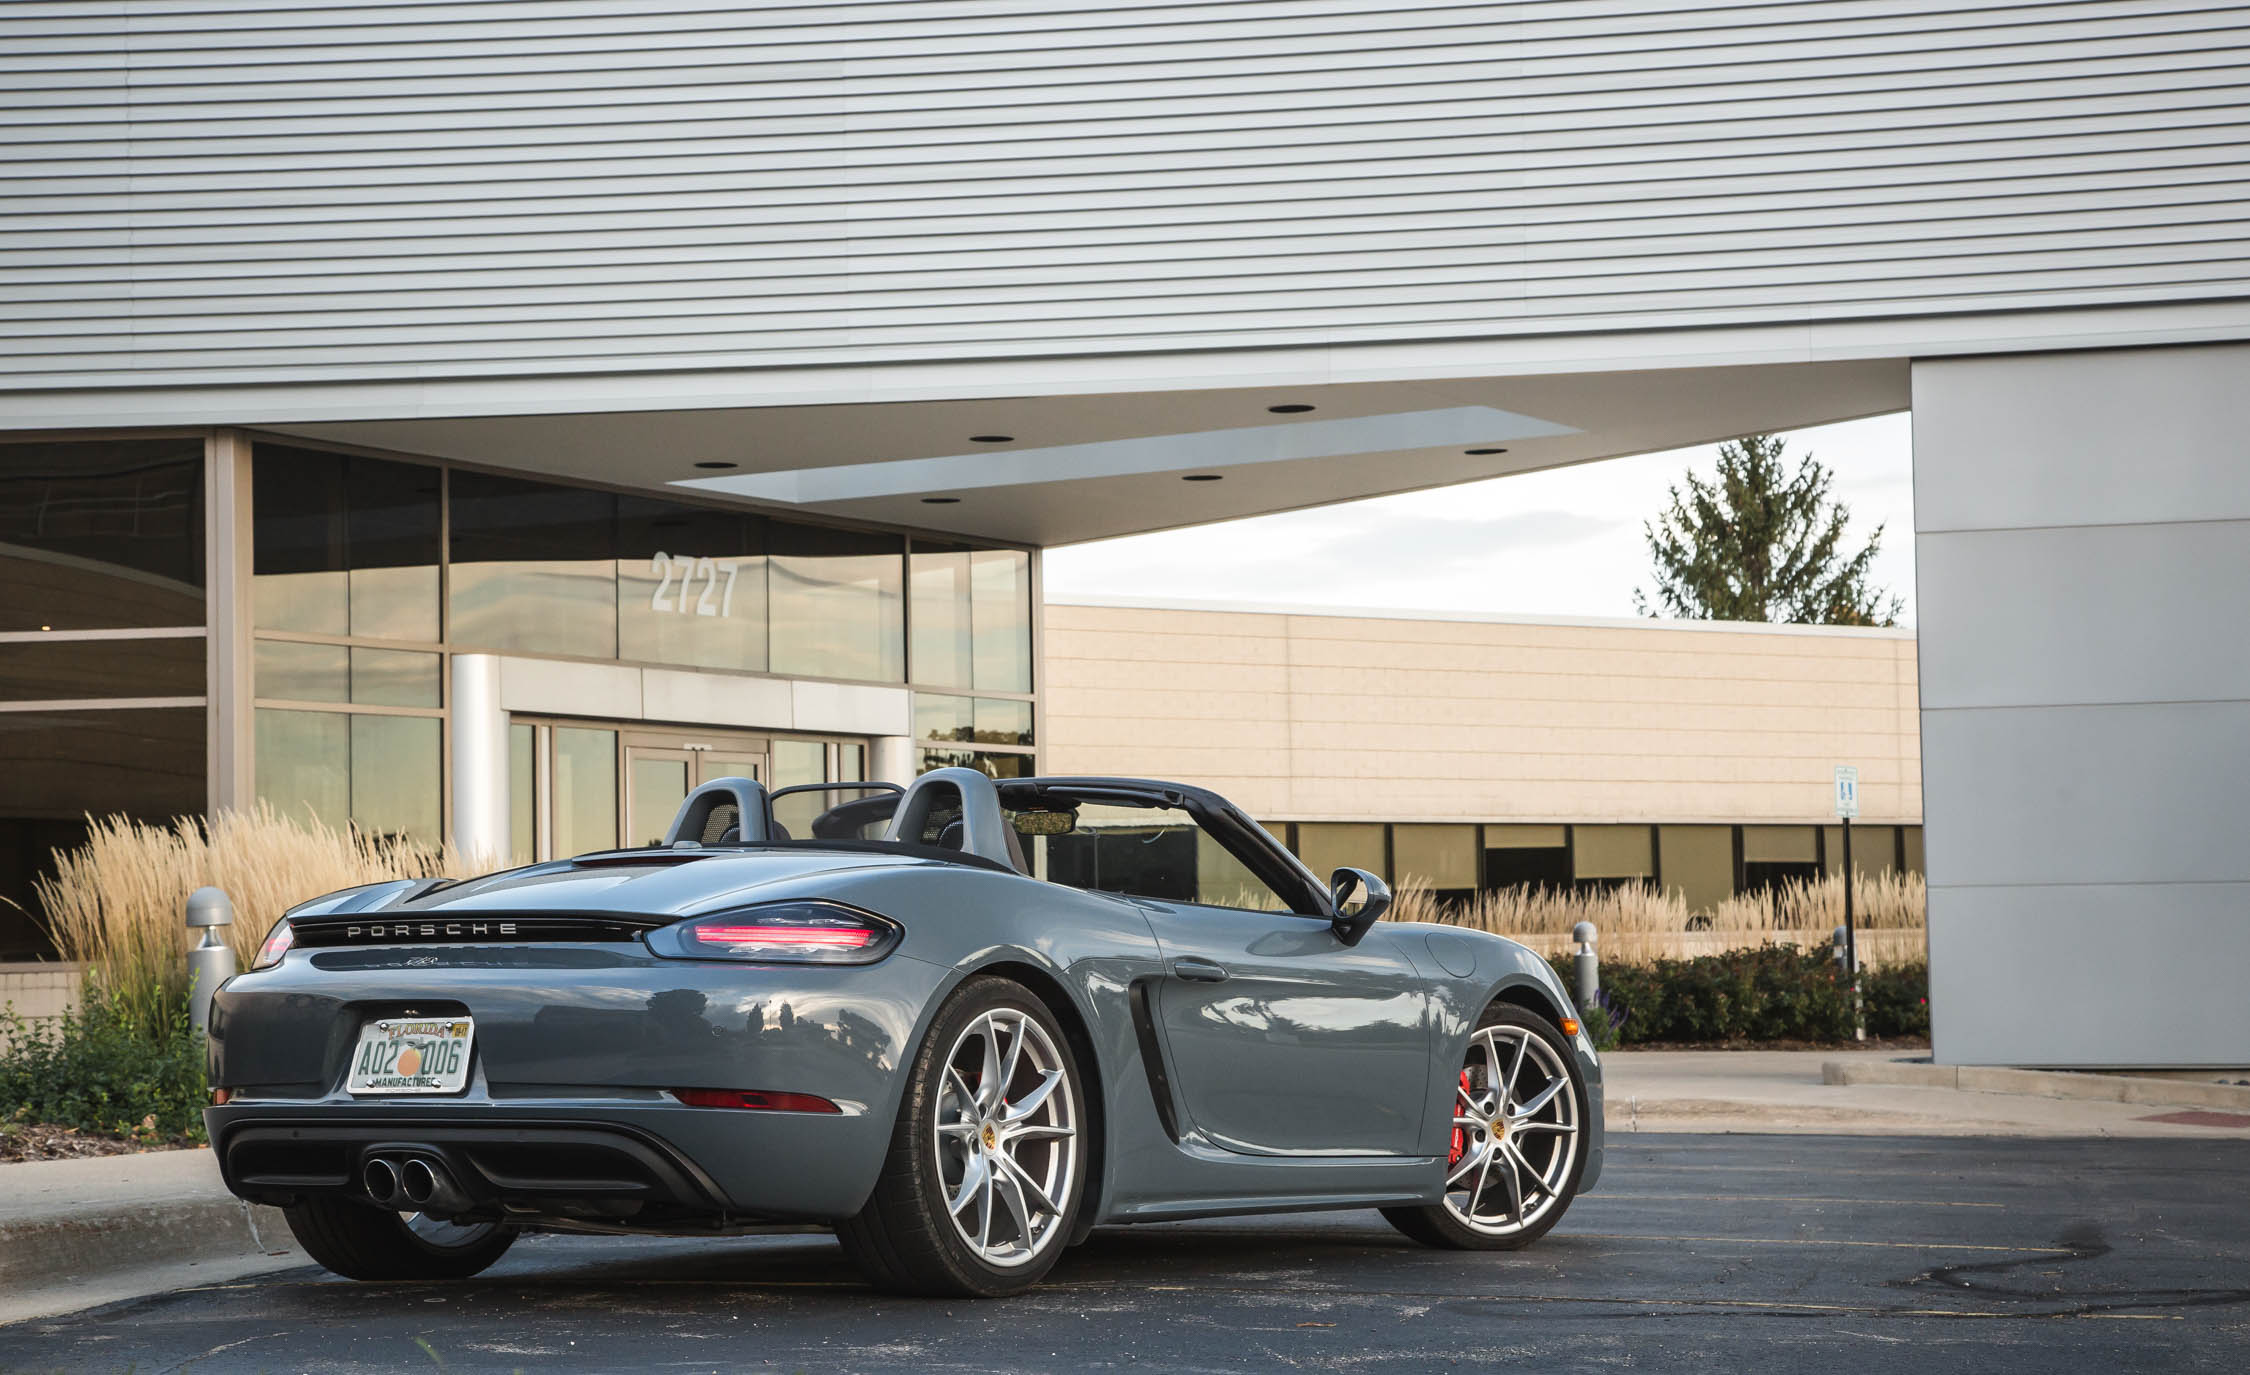 2017 Porsche 718 Boxster S Exterior Rear Side And Rear (View 24 of 71)